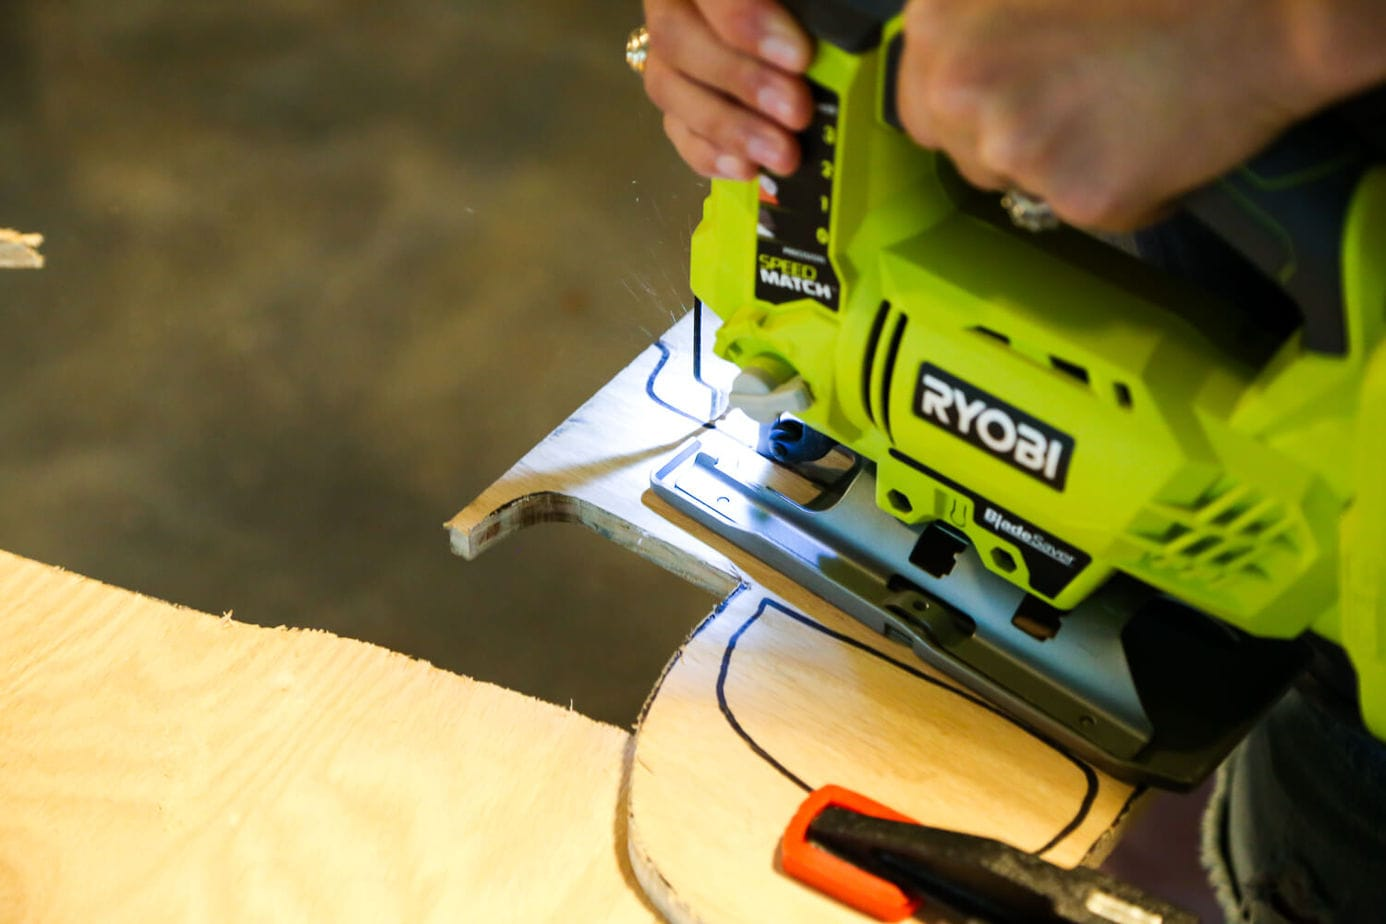 close up of a Ryobi jigsaw being used